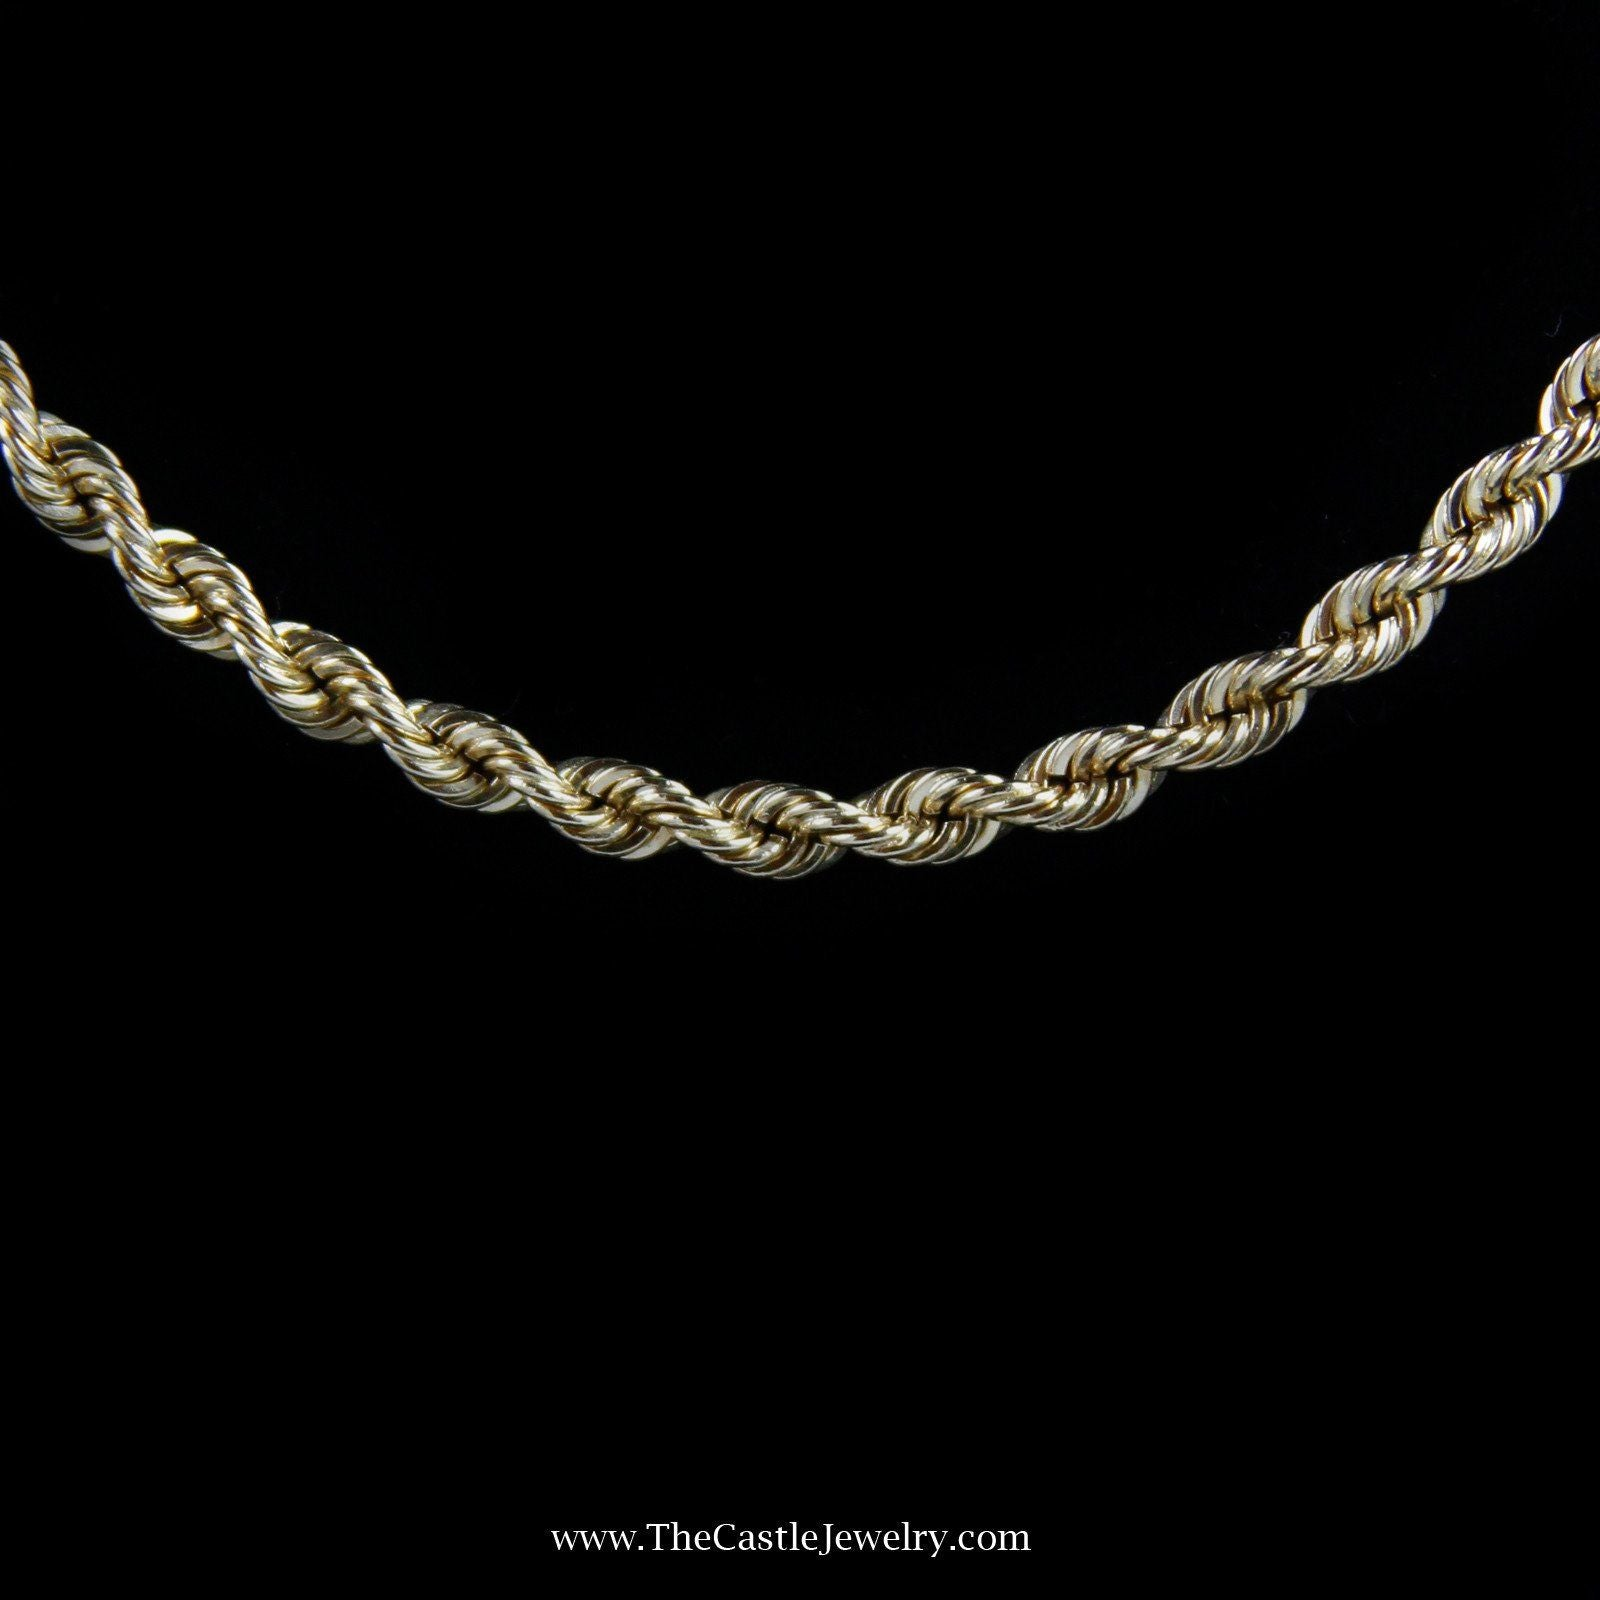 21″ Rope Chain w/ Box Clasp & Latch in Yellow Gold-1